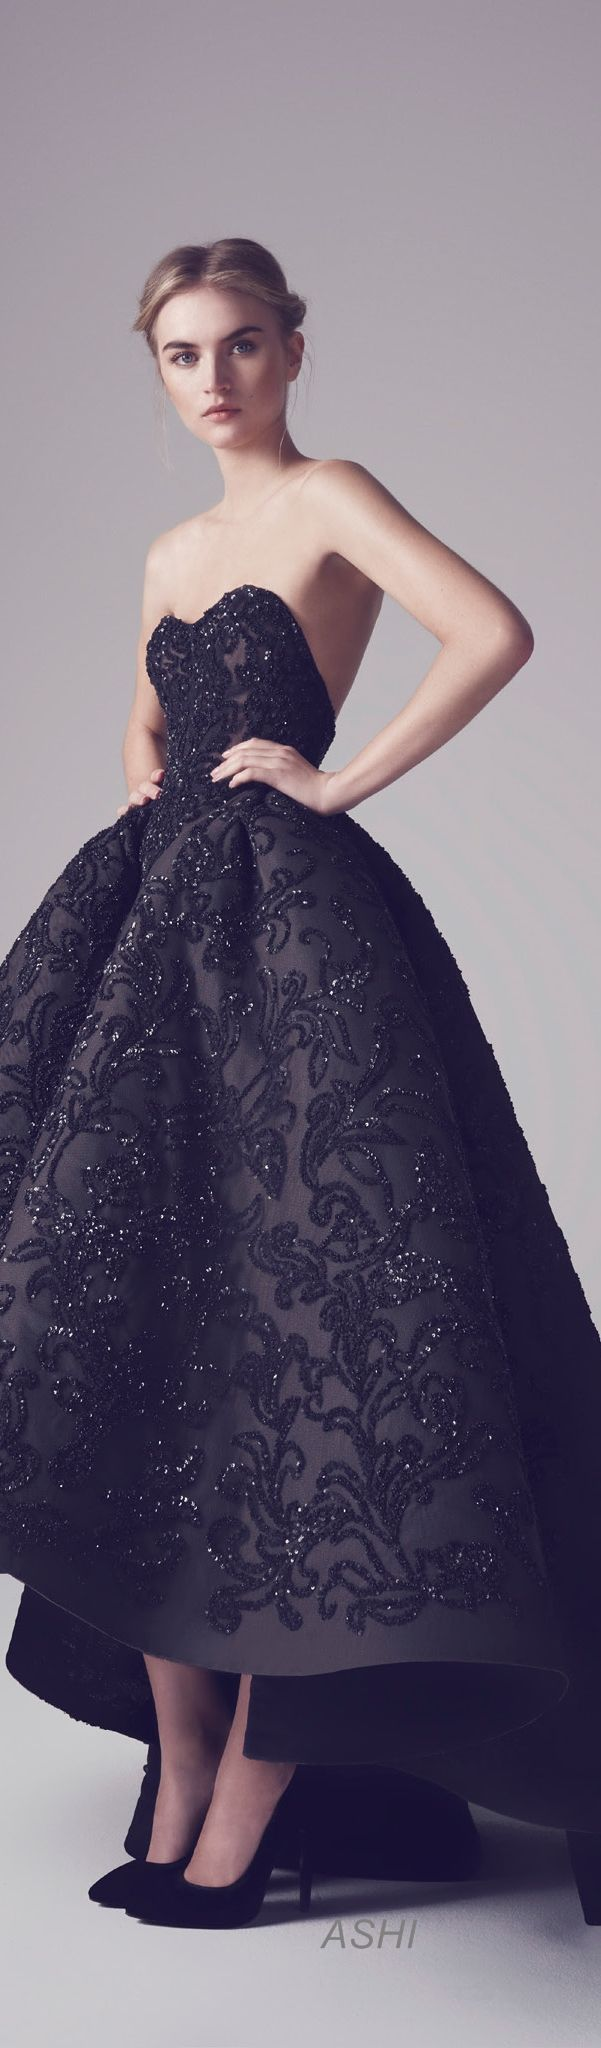 Spring couture mohammed ashi wedding pinterest couture